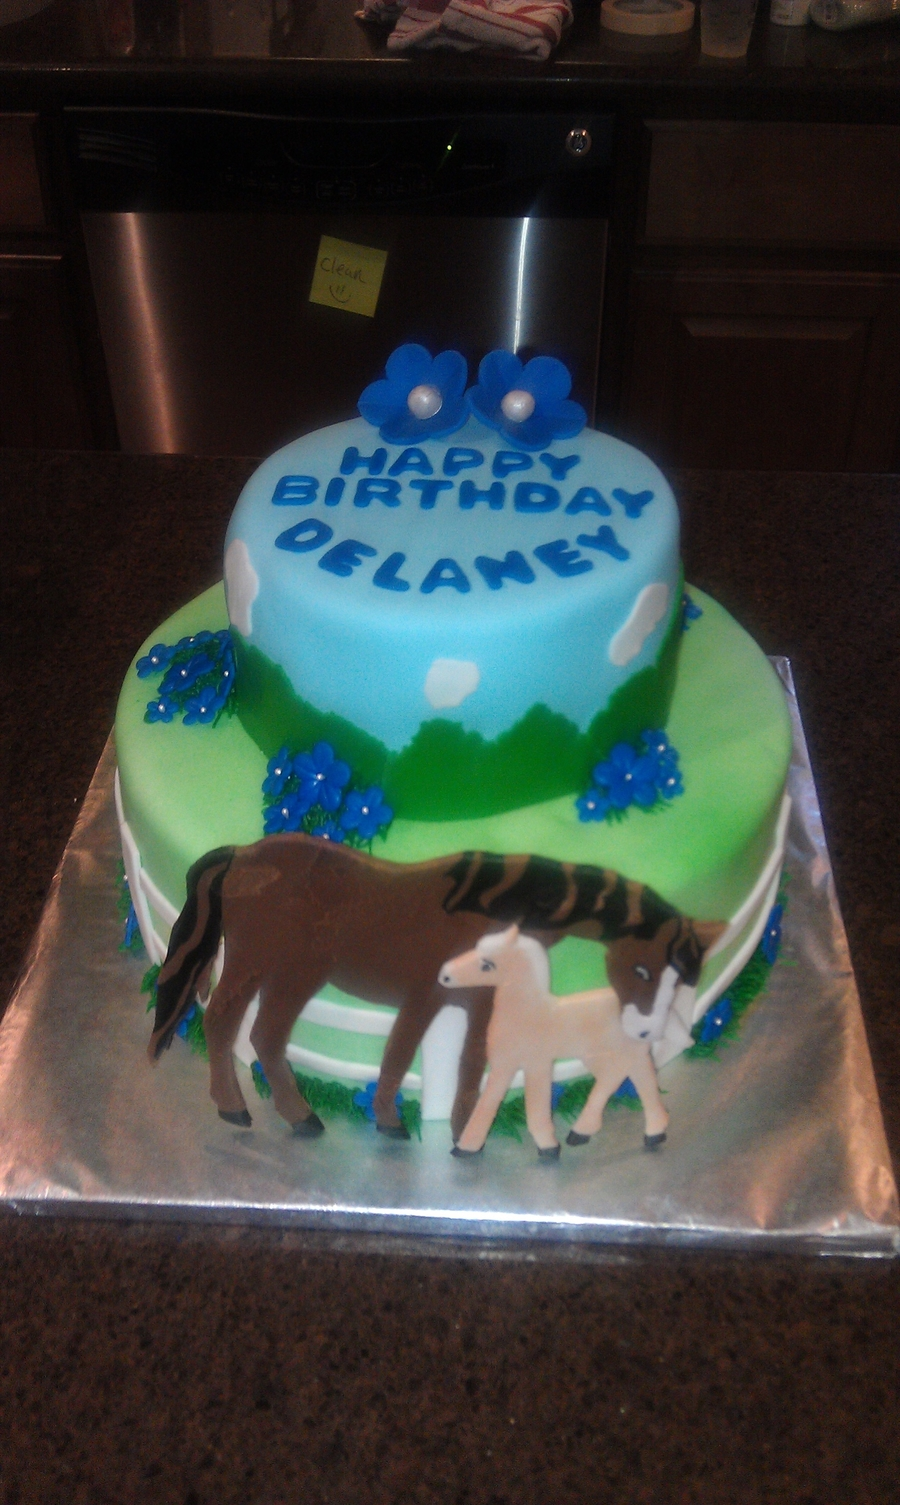 Enjoyable Horse Themed Birthday Cake Cakecentral Com Funny Birthday Cards Online Alyptdamsfinfo